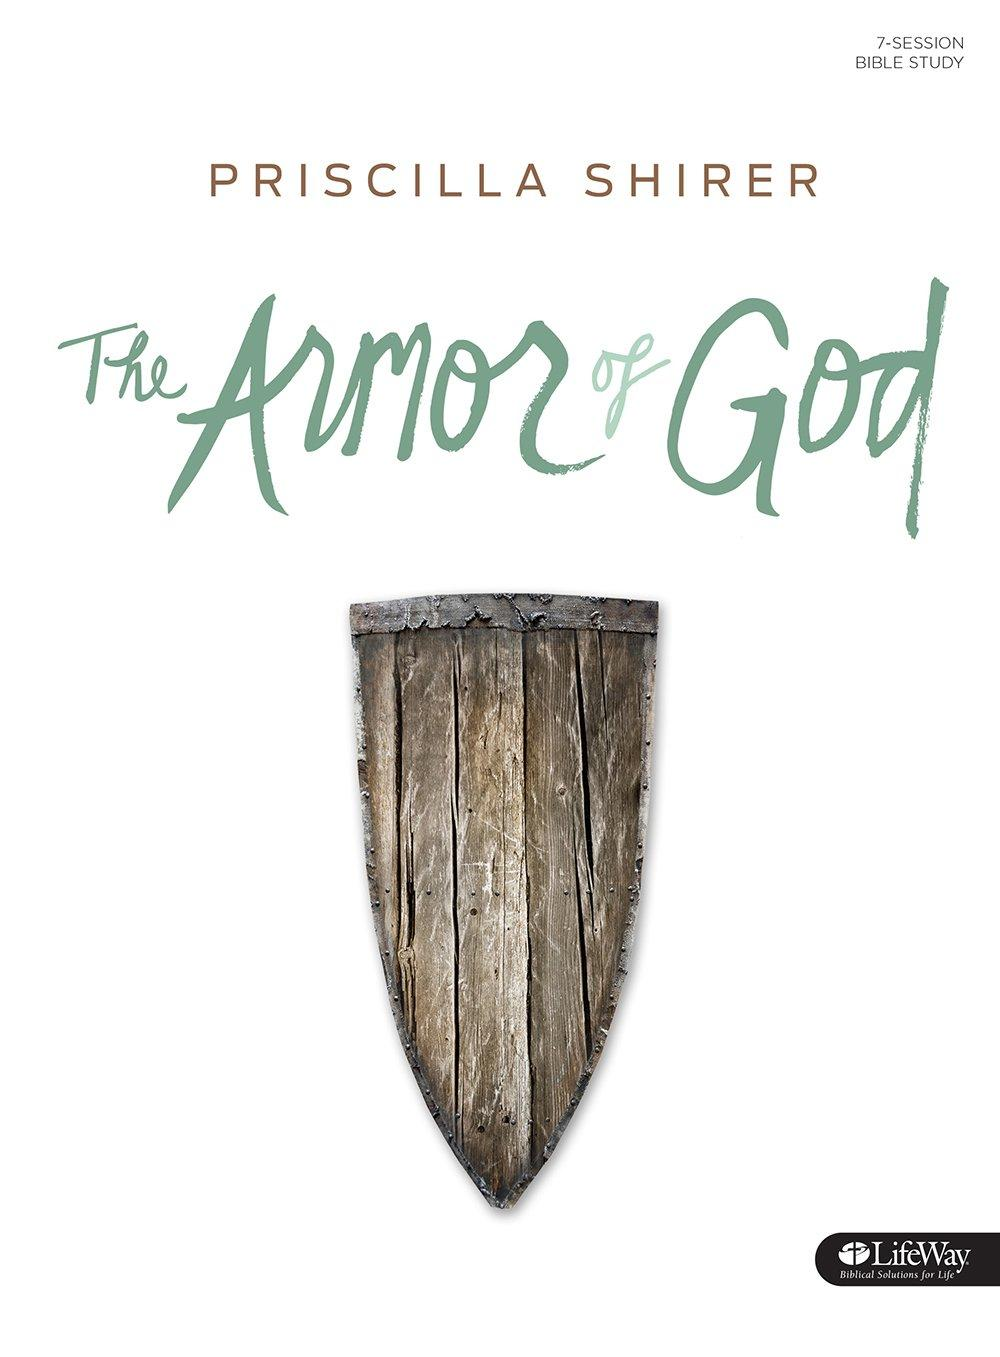 The armor of god priscilla shirer 9781430040279 amazon books from the publisher fandeluxe Image collections